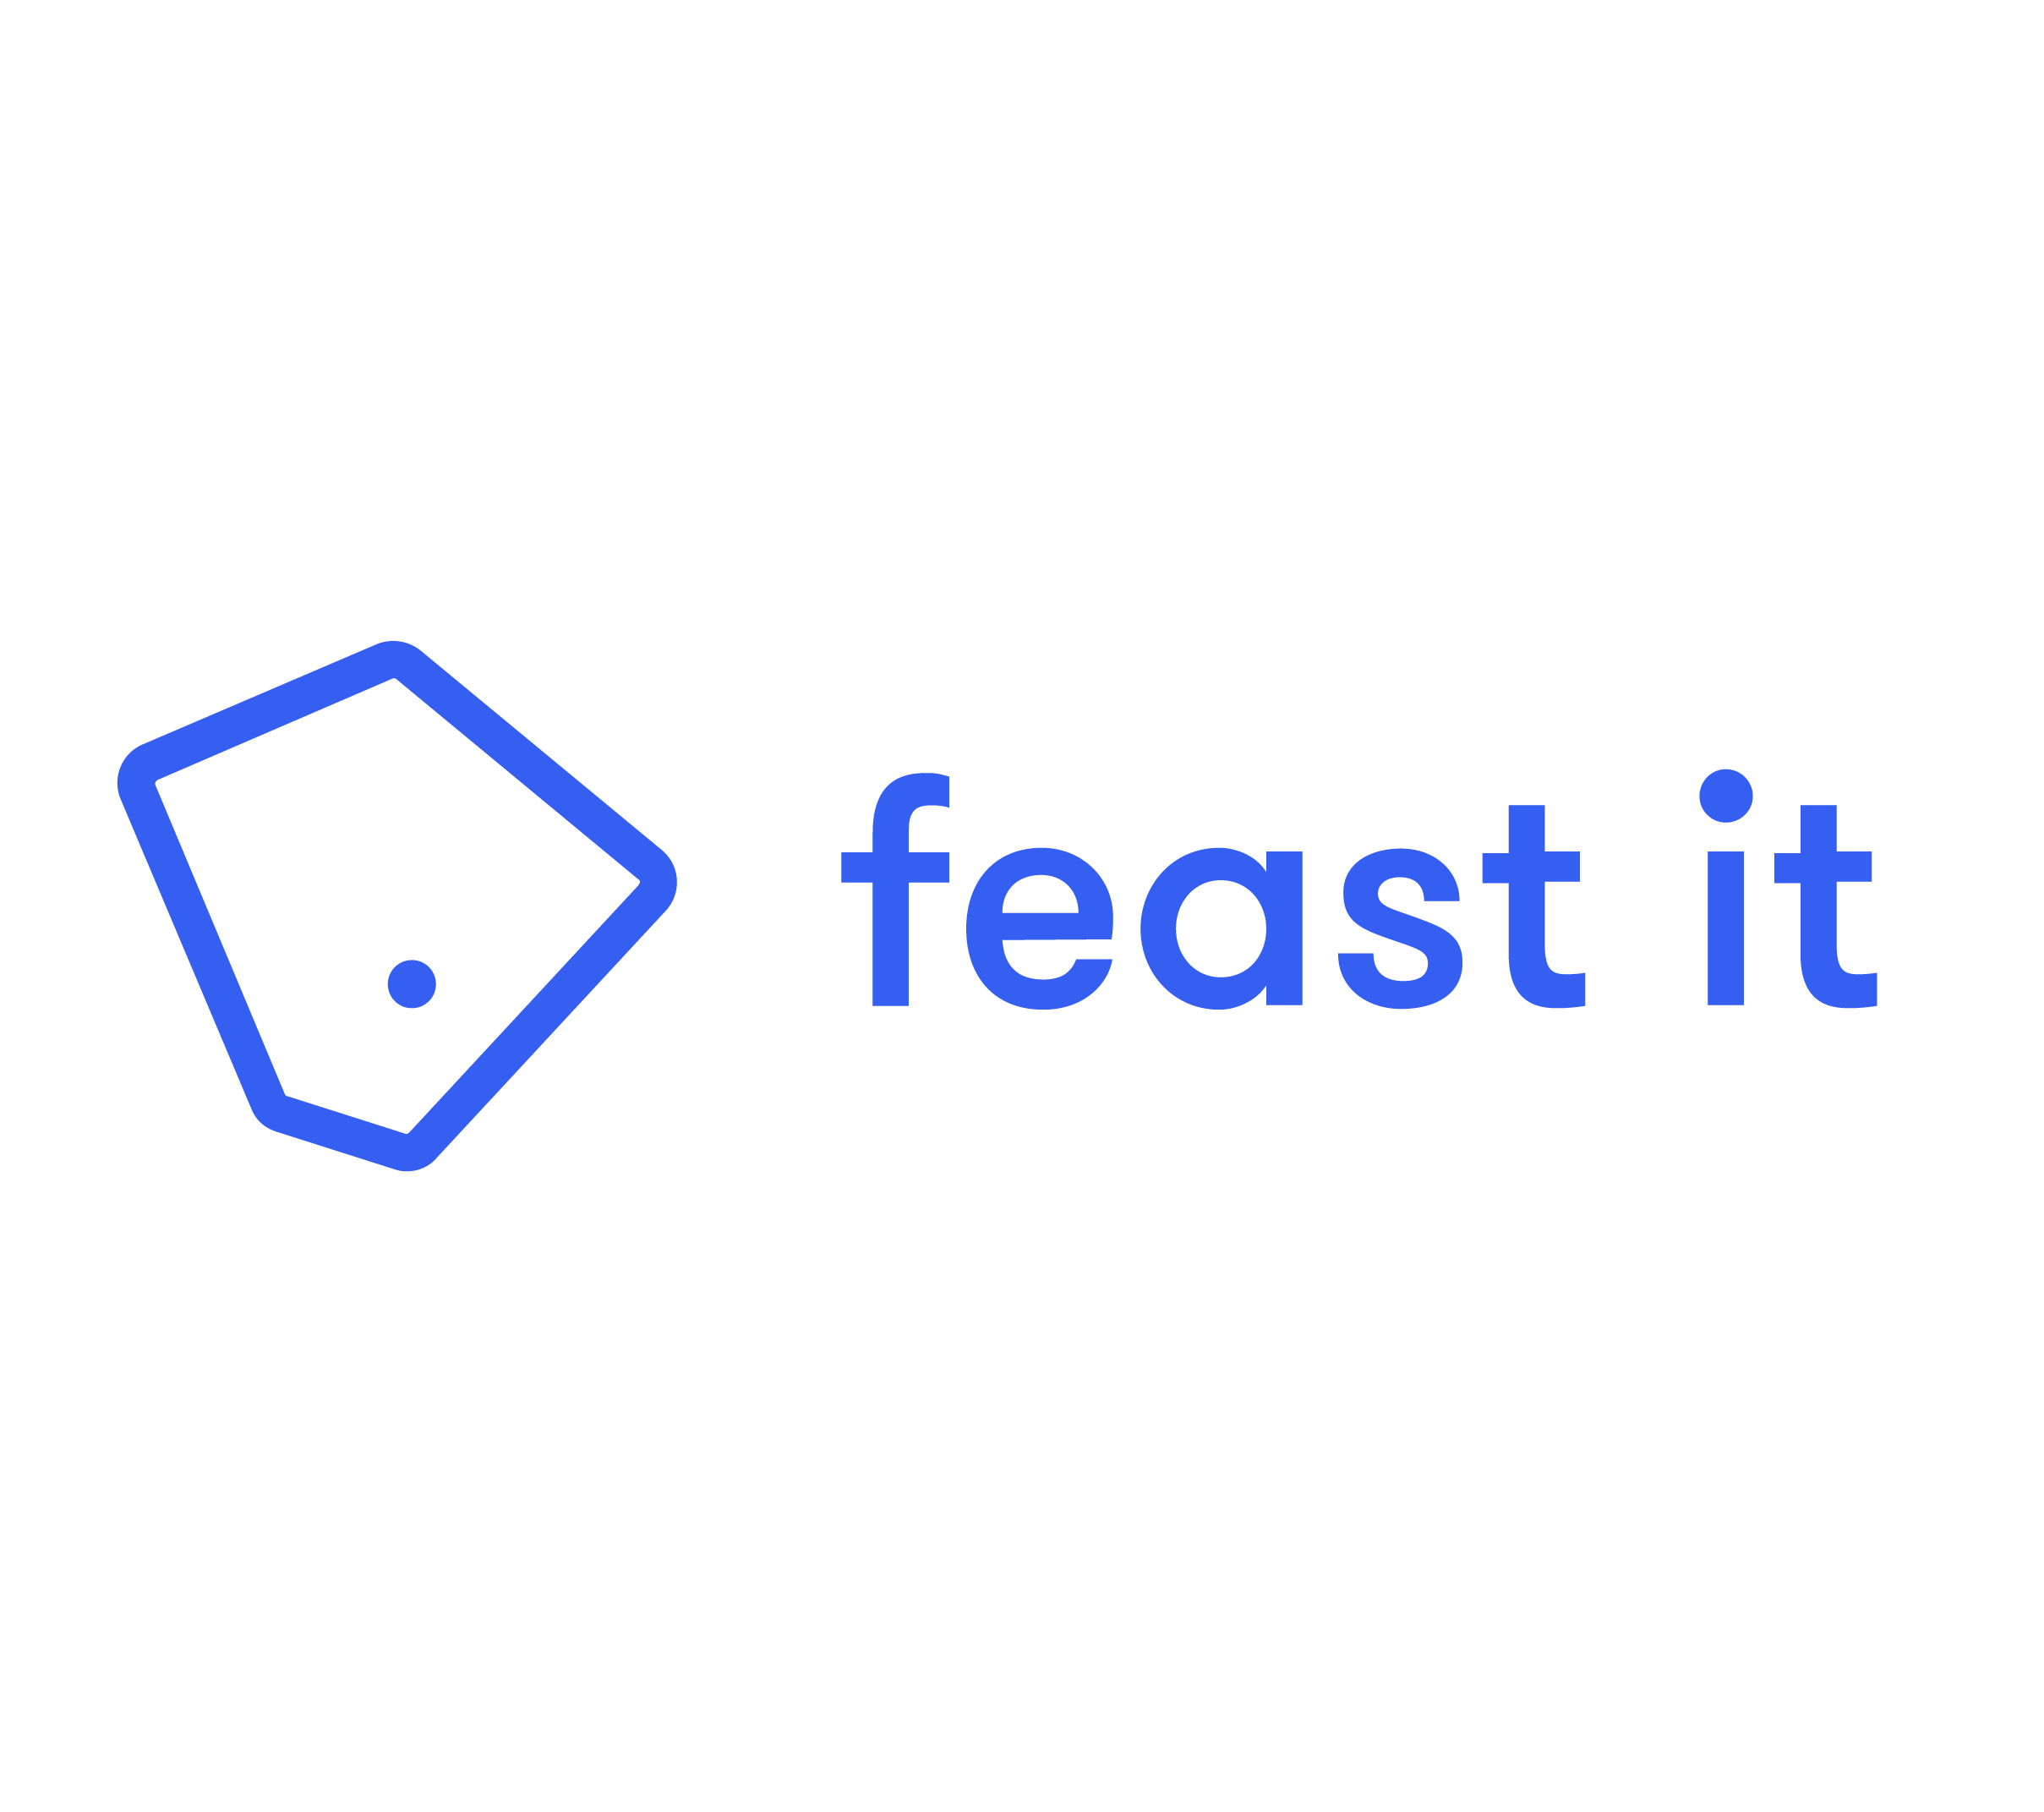 Feast-it-logo-horizontal-dark.png